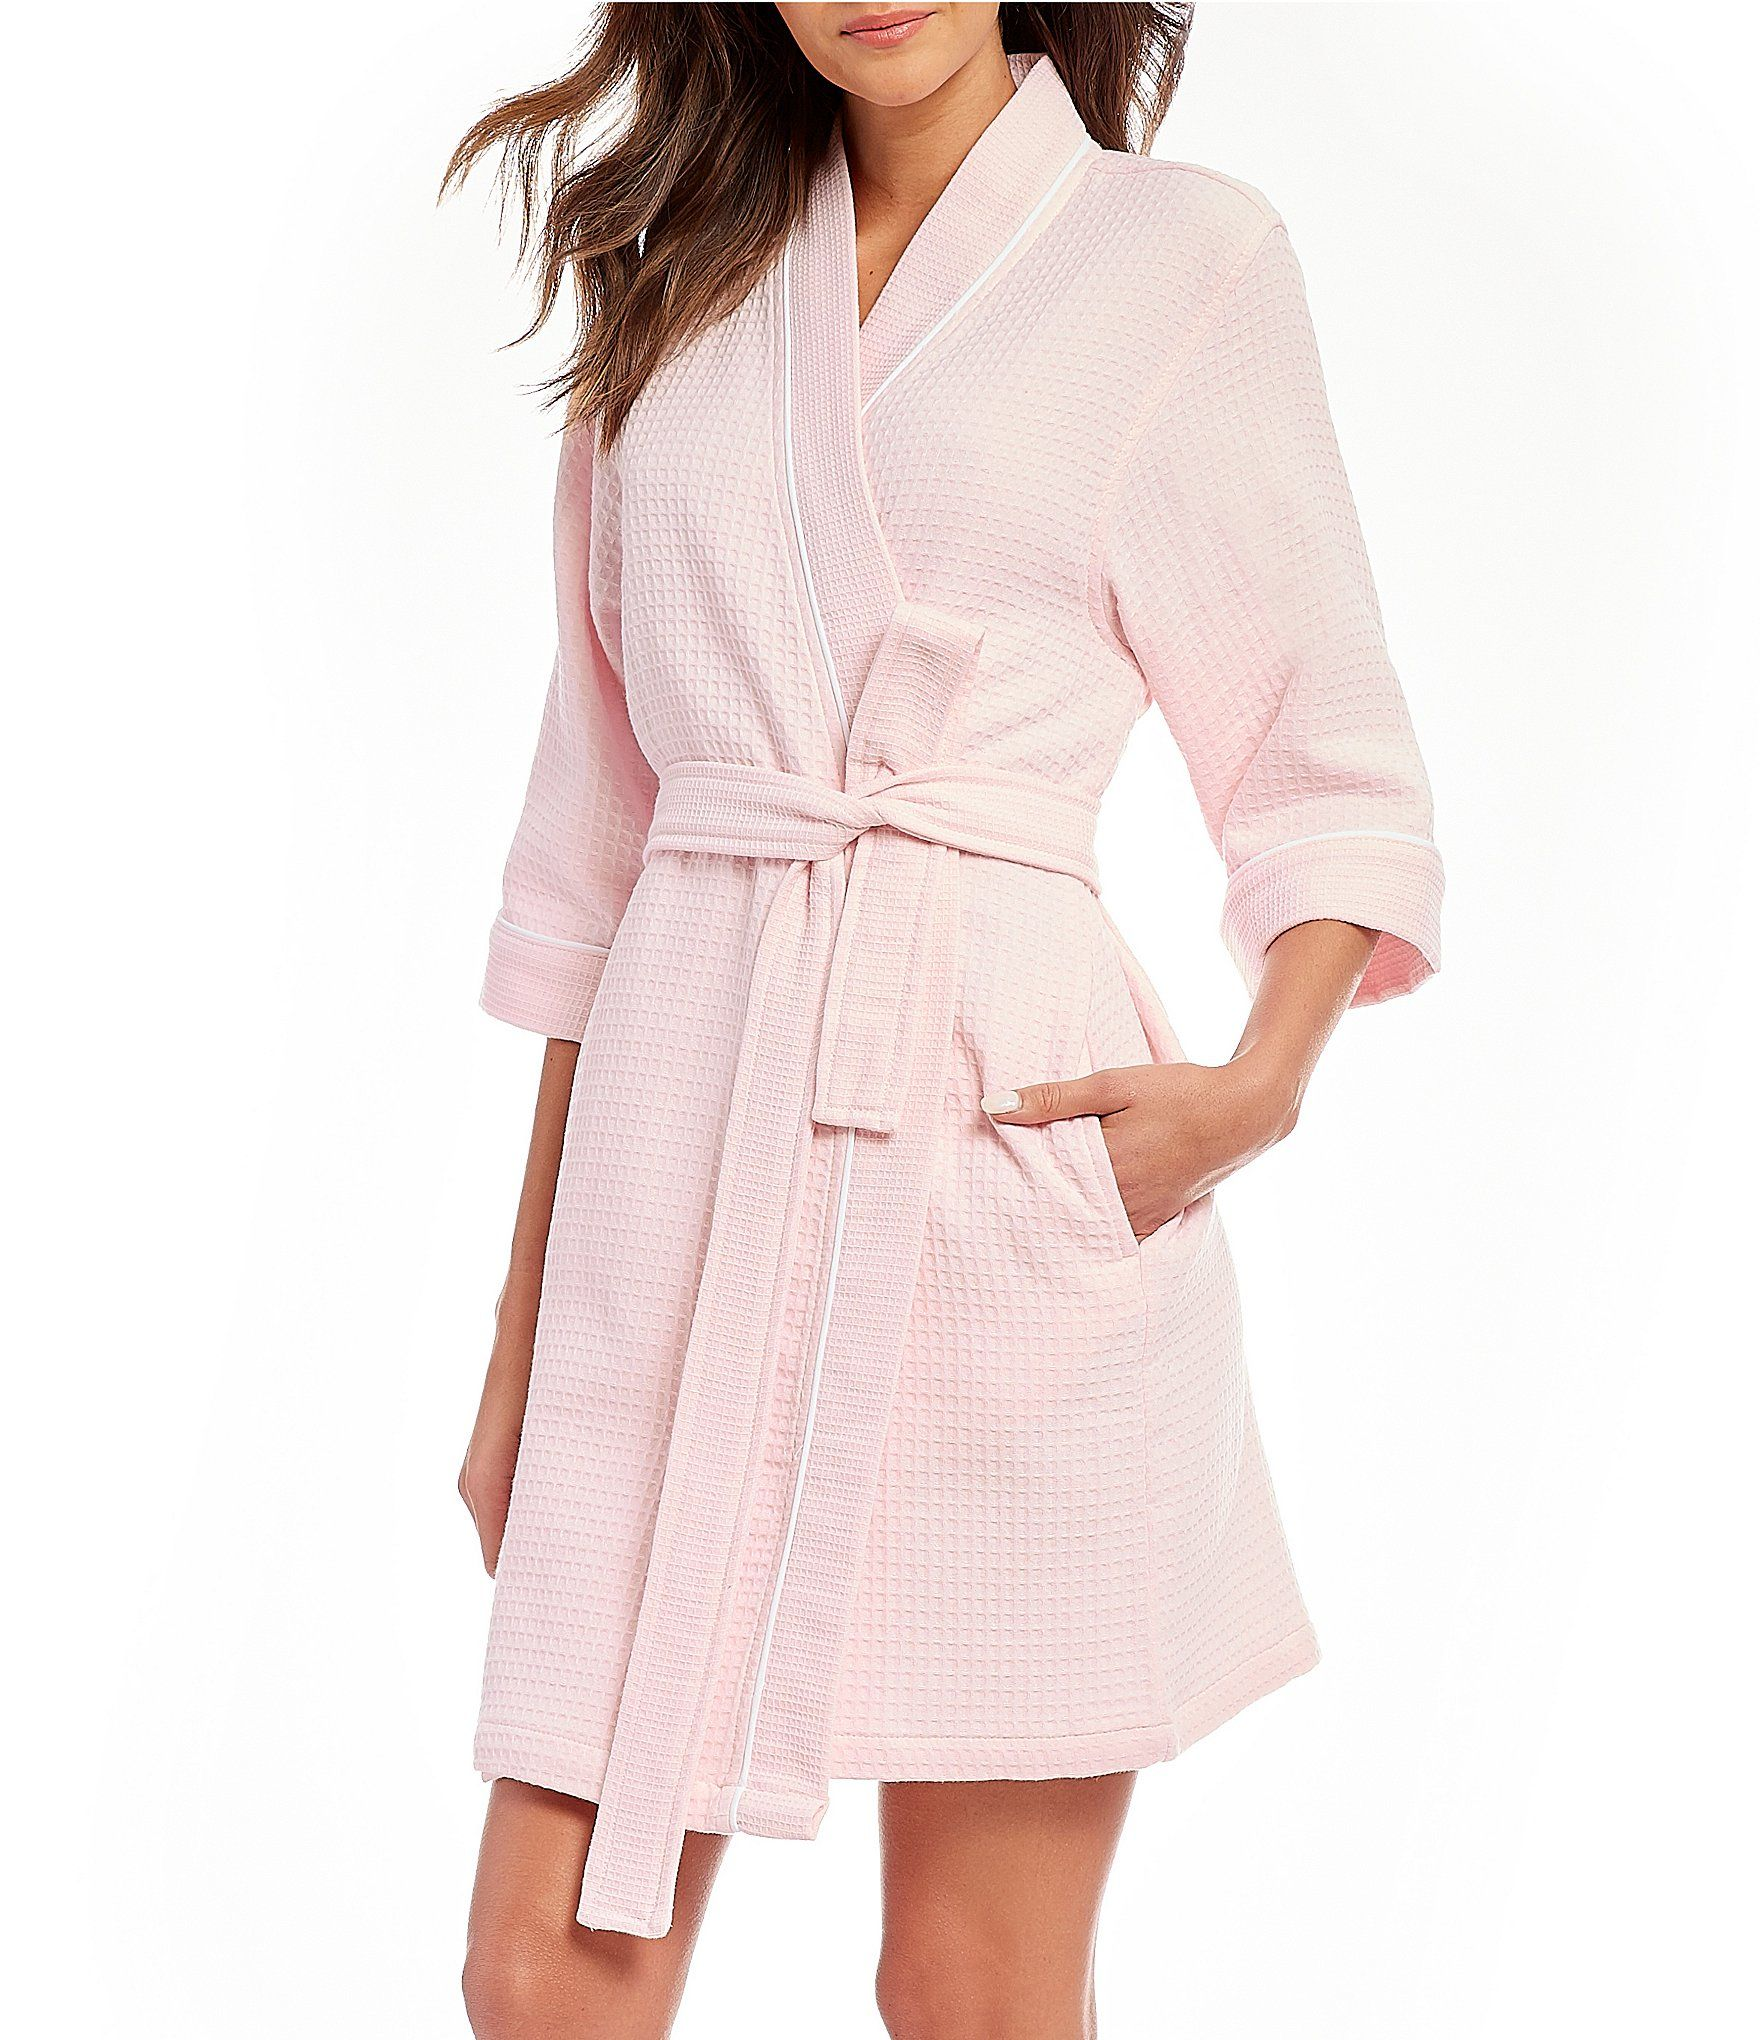 From Sleep Sense, this robe features:Soft textured waffle Banded collar neckline3/4 sleevesContrast piping trimTie beltApprox. 38